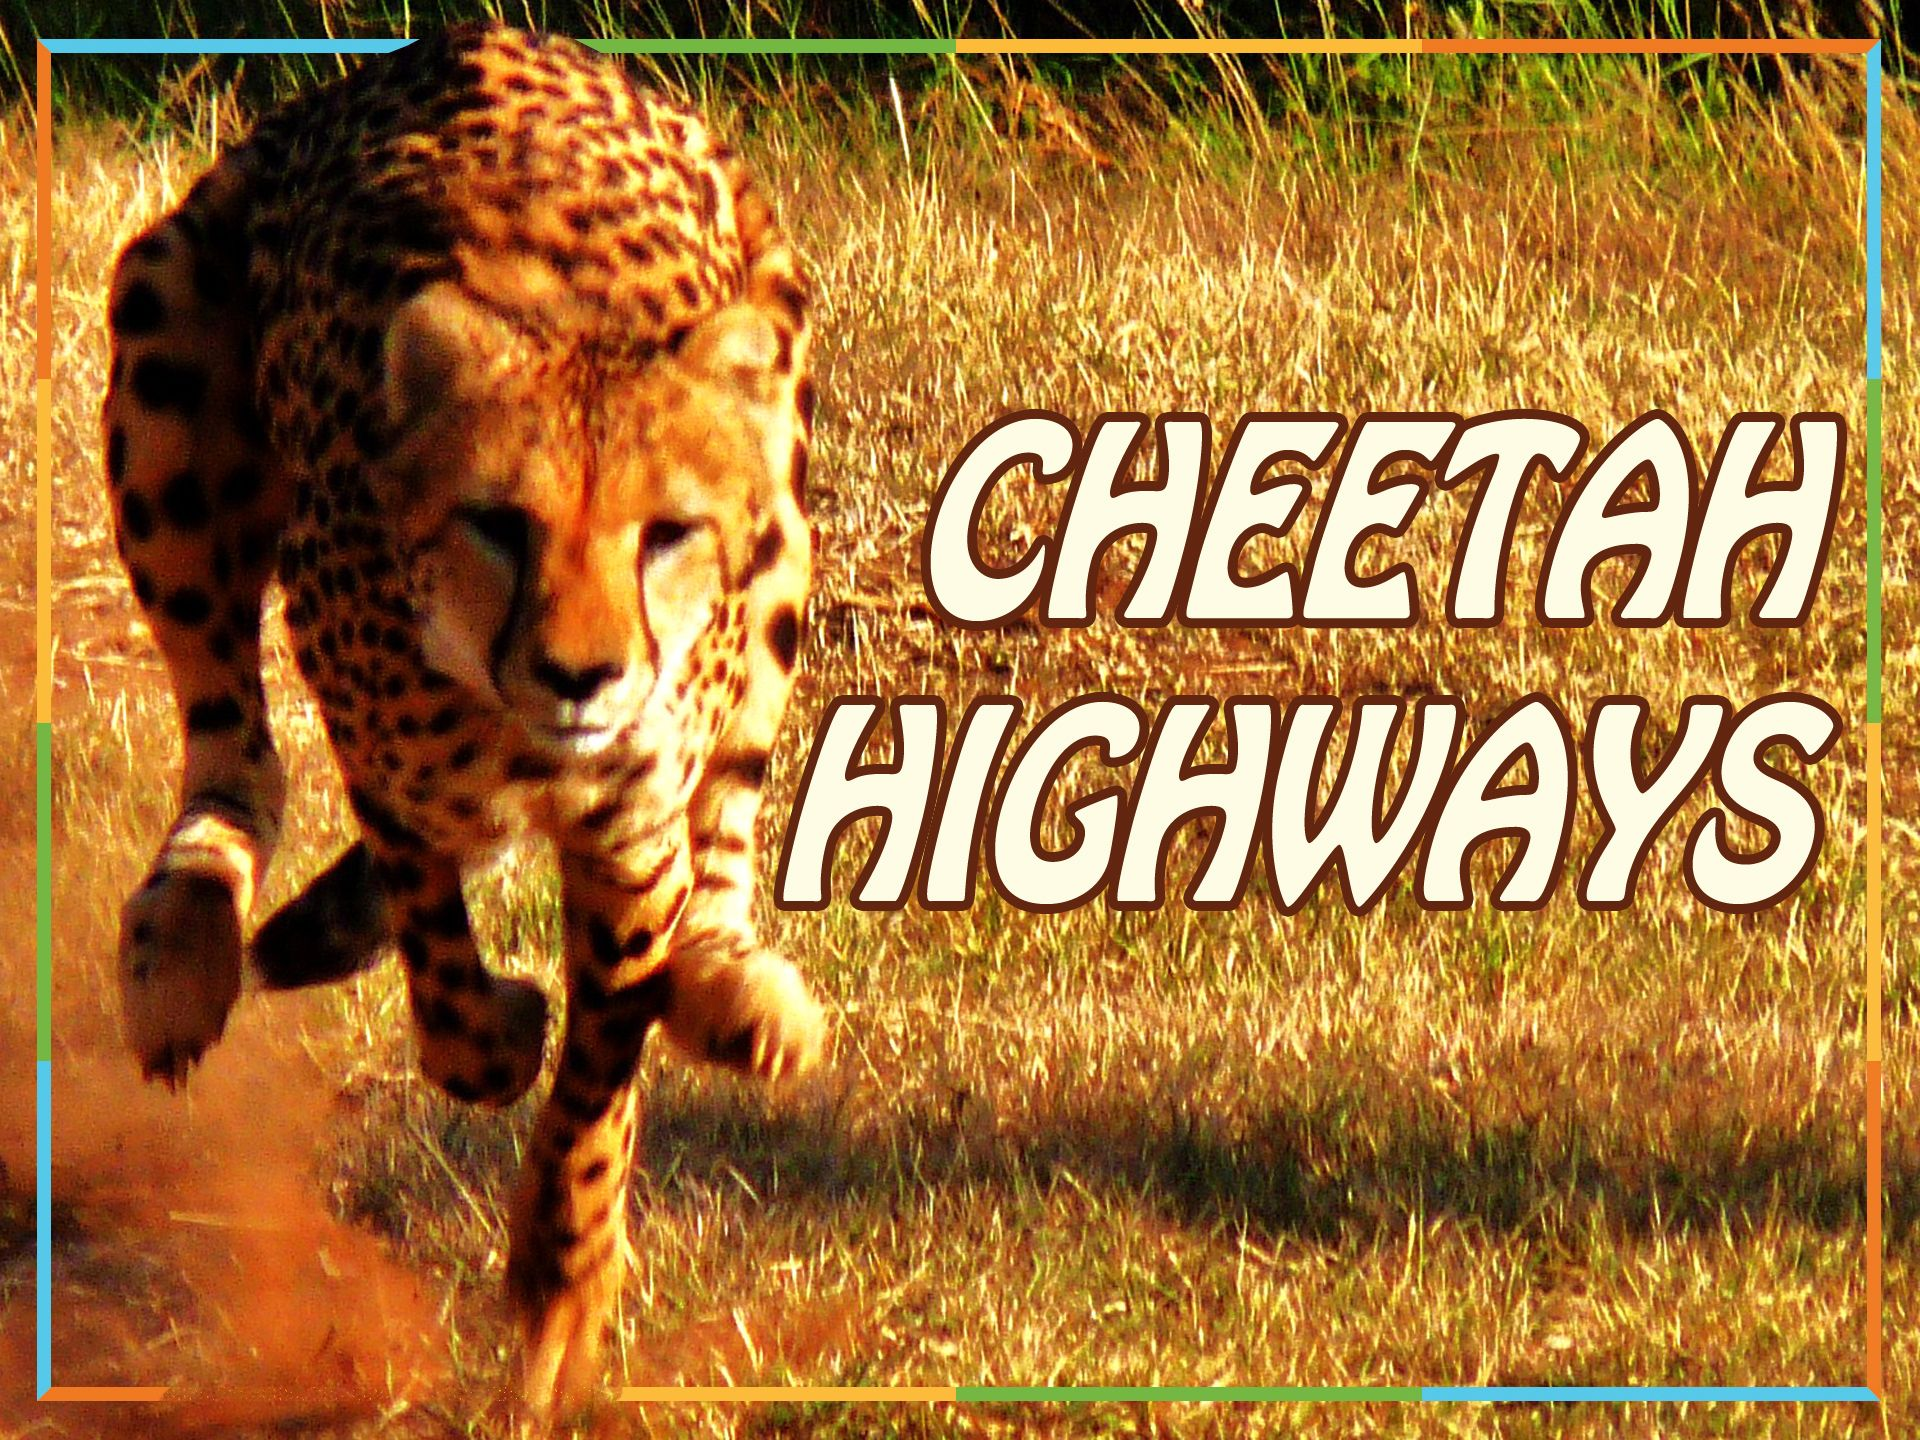 Chase Down Facts About Cheetahs With This Book About These Fast Cats Literacy Cat Facts Emergent Readers